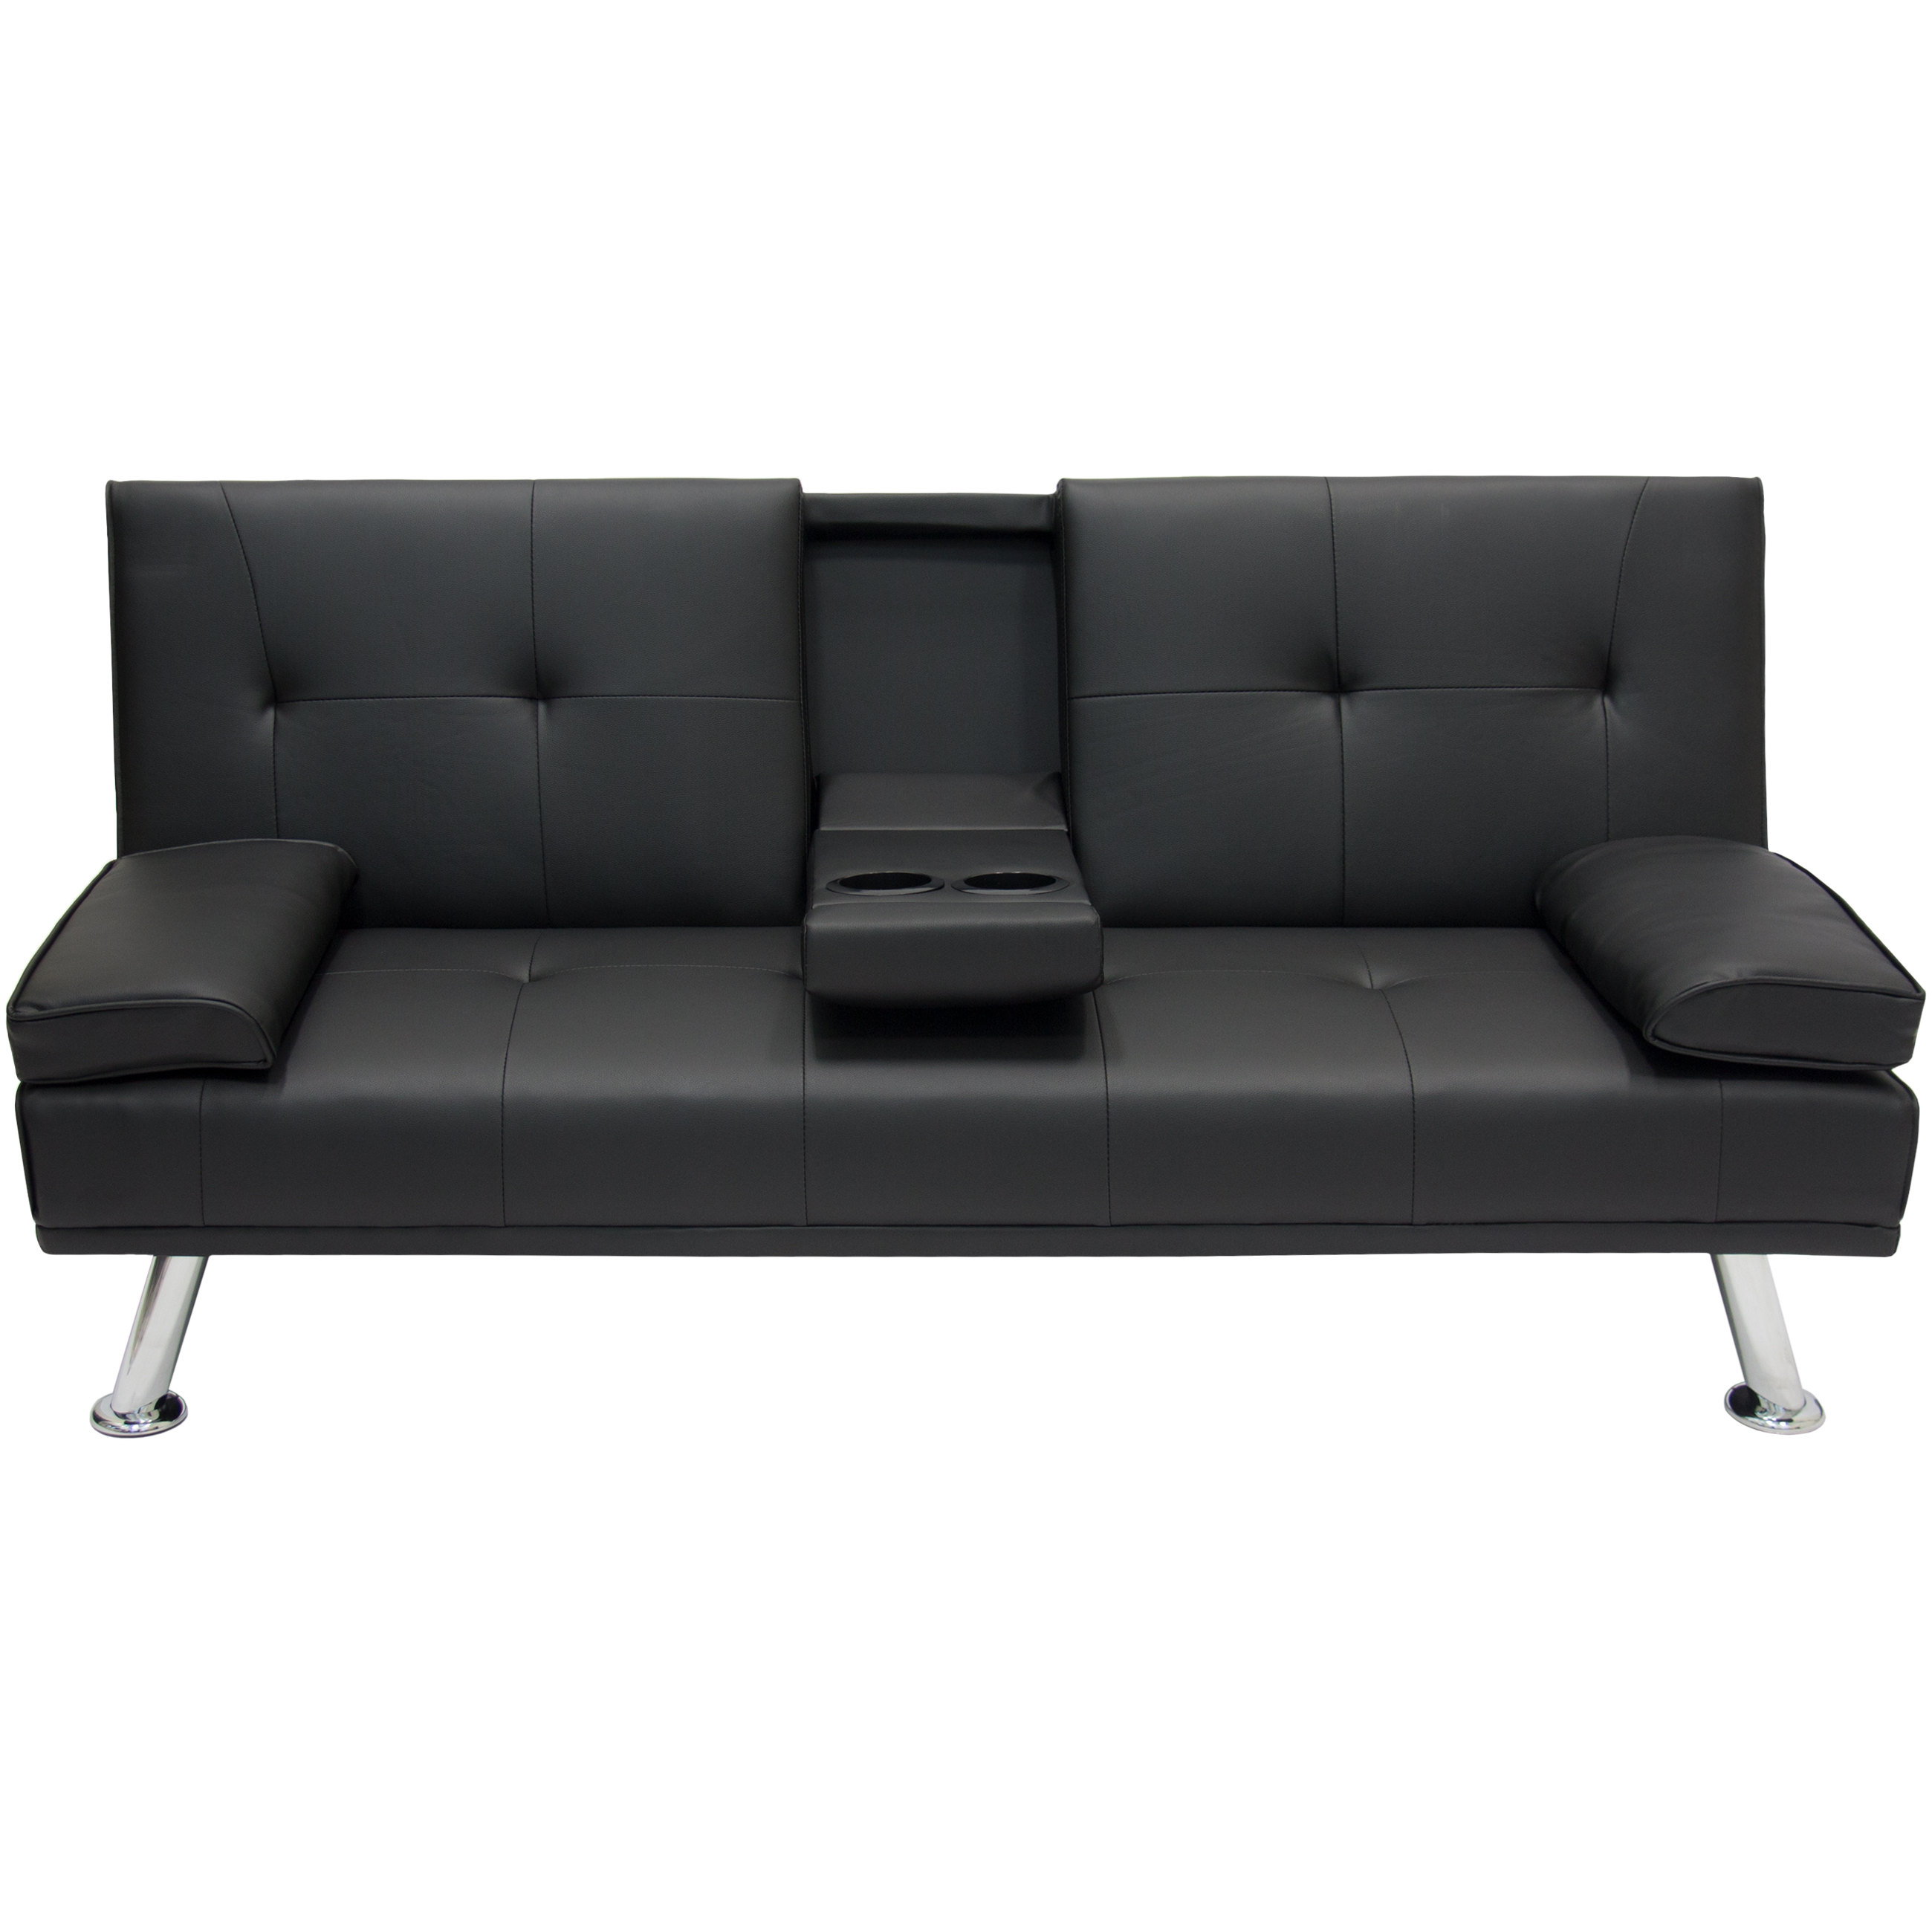 wonderful modern futon contemporary sofa bed and inspiration -  modern futon